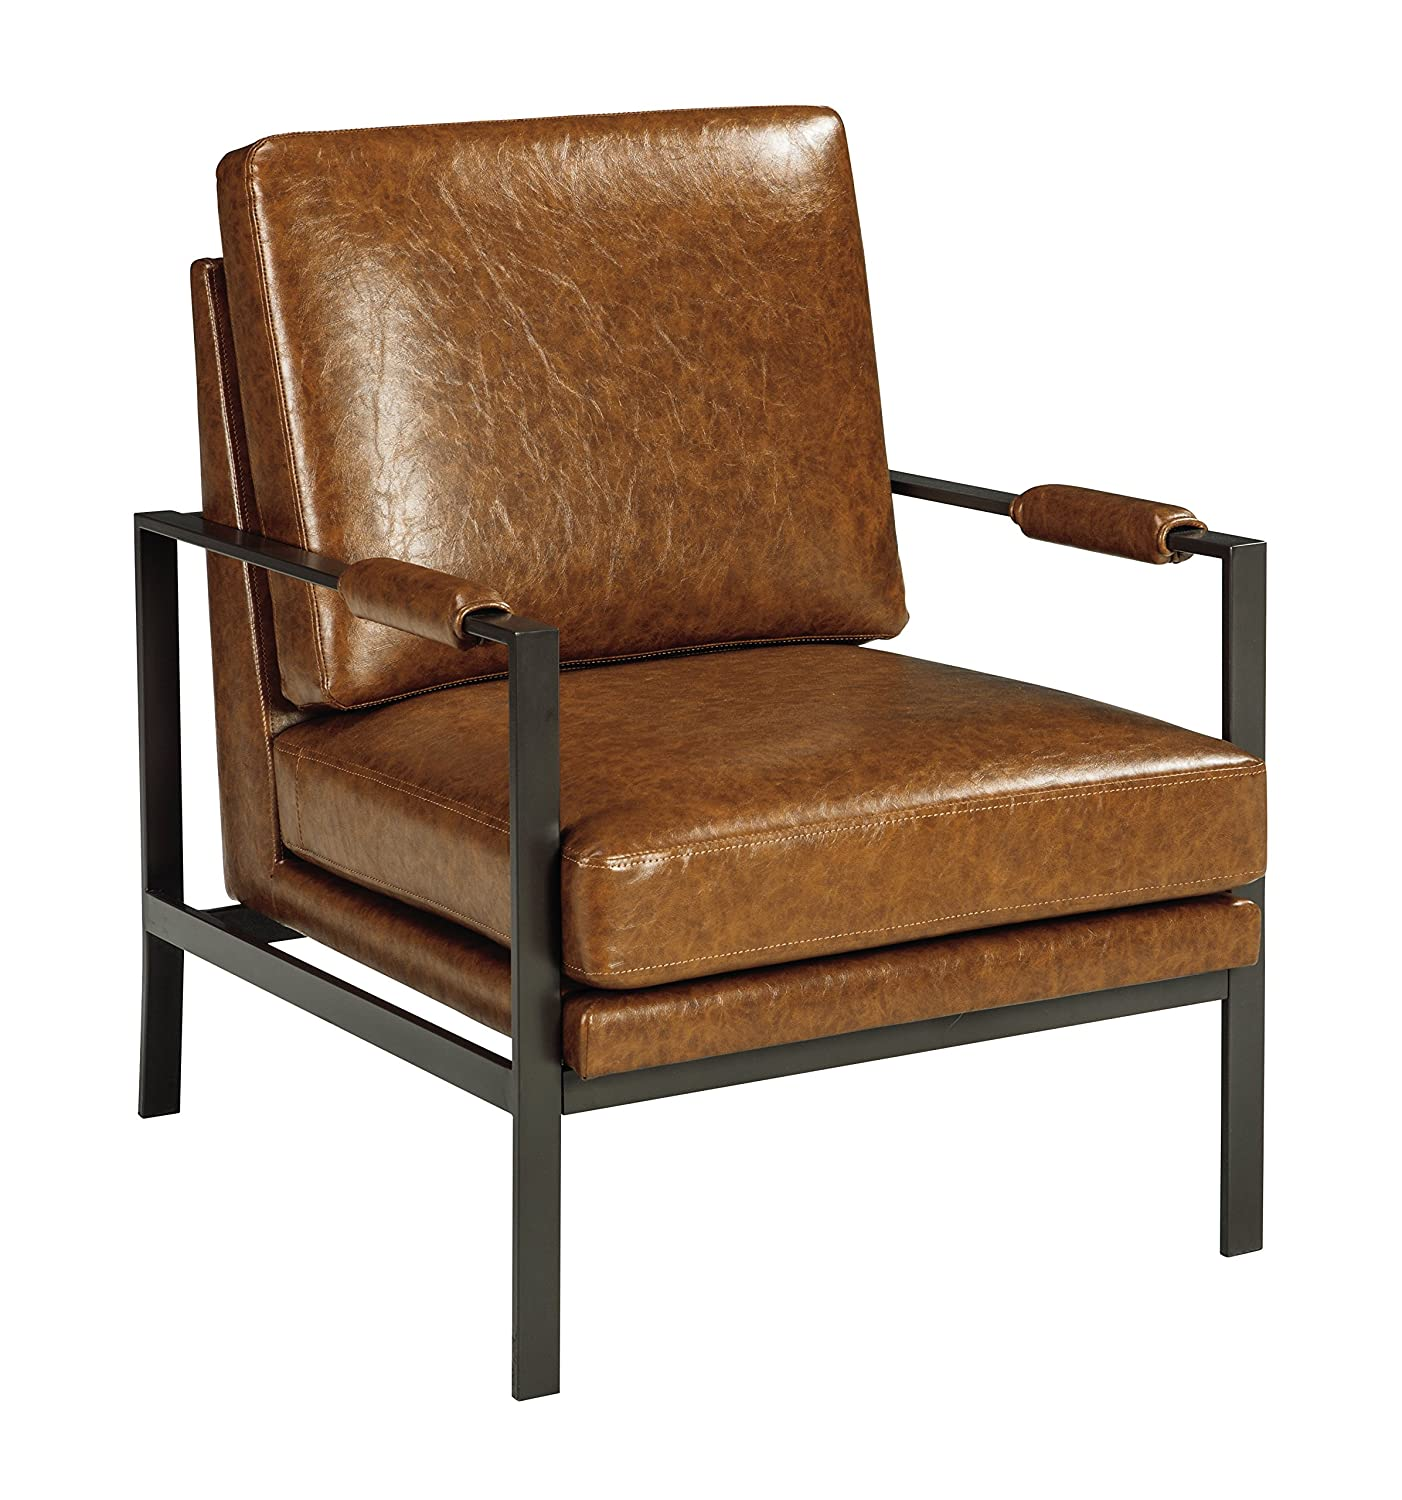 Leather Accent Chairs Metal Legs Caramel.Ashley Furniture Signature Design Peacemaker Accent Chair Mid Century Modern Brown Antique Brass Legs